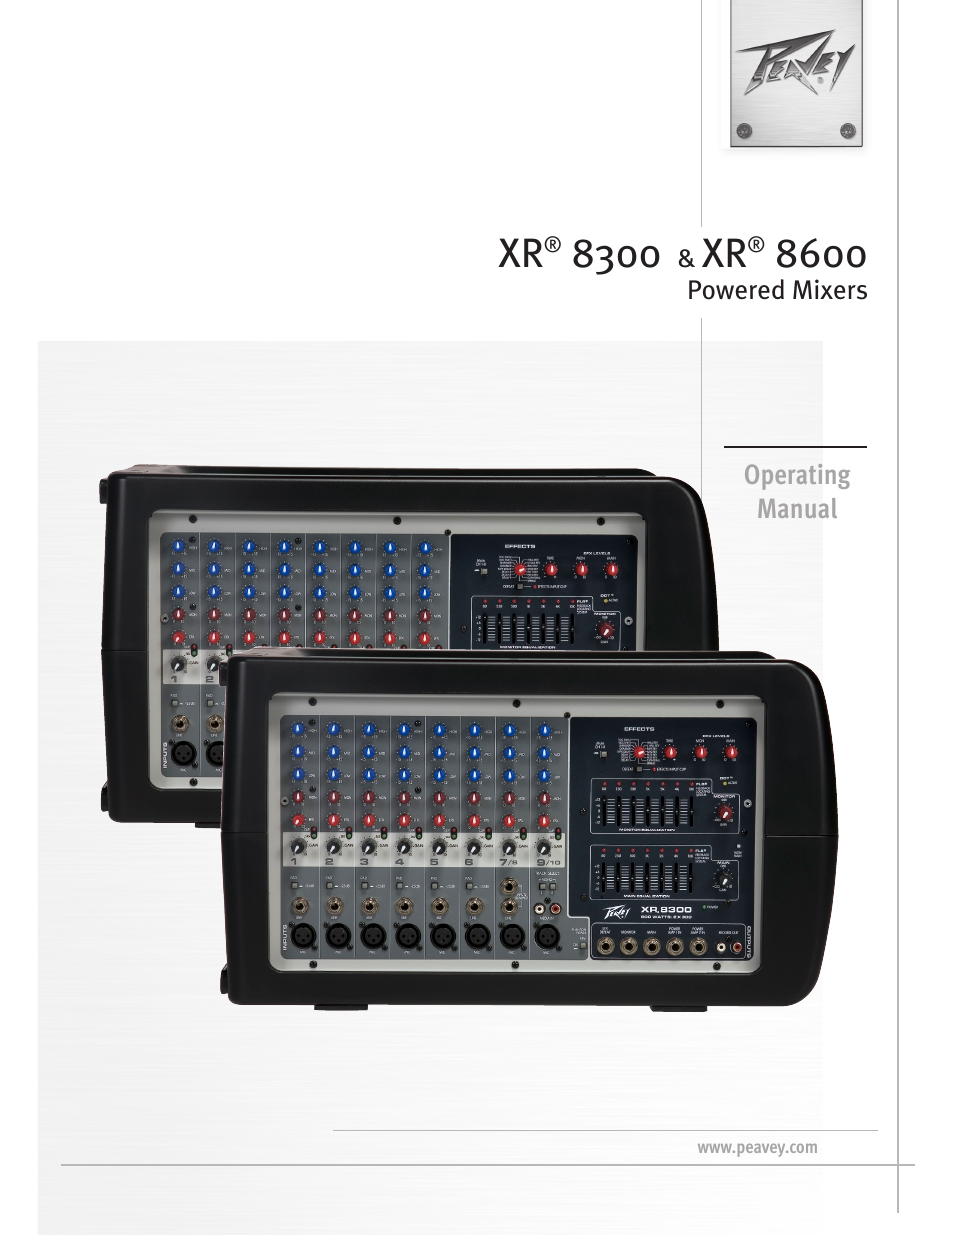 peavey xr 8600 user manual 20 pages also for xr 8300 rh manualsdir com Used Peavey XR 8300 Powered Mixer and Amps